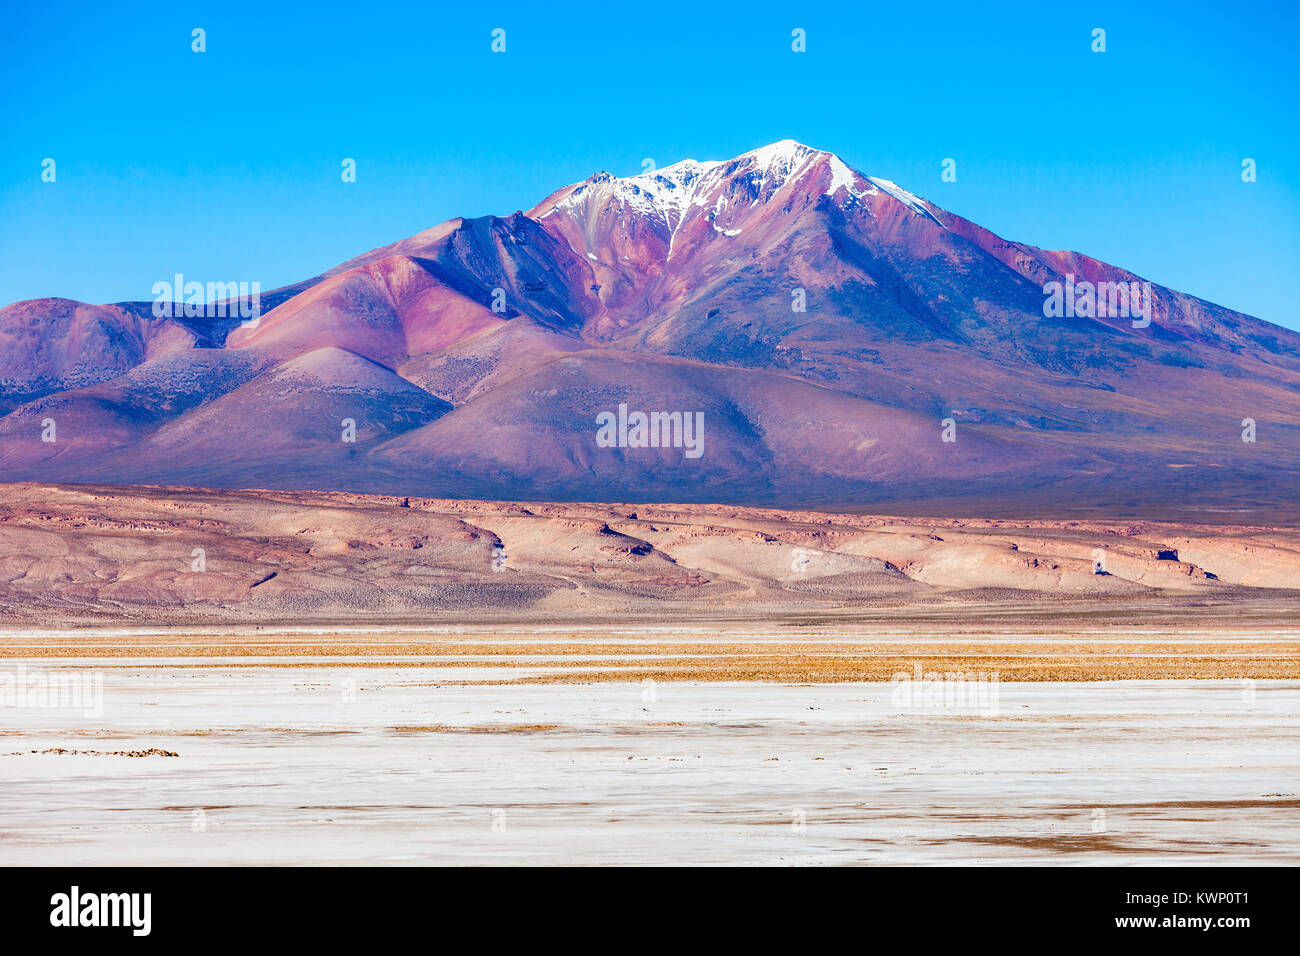 Ollague or Ullawi is a massive andesite stratovolcano in the Andes on the border between Bolivia and Chile. - Stock Image